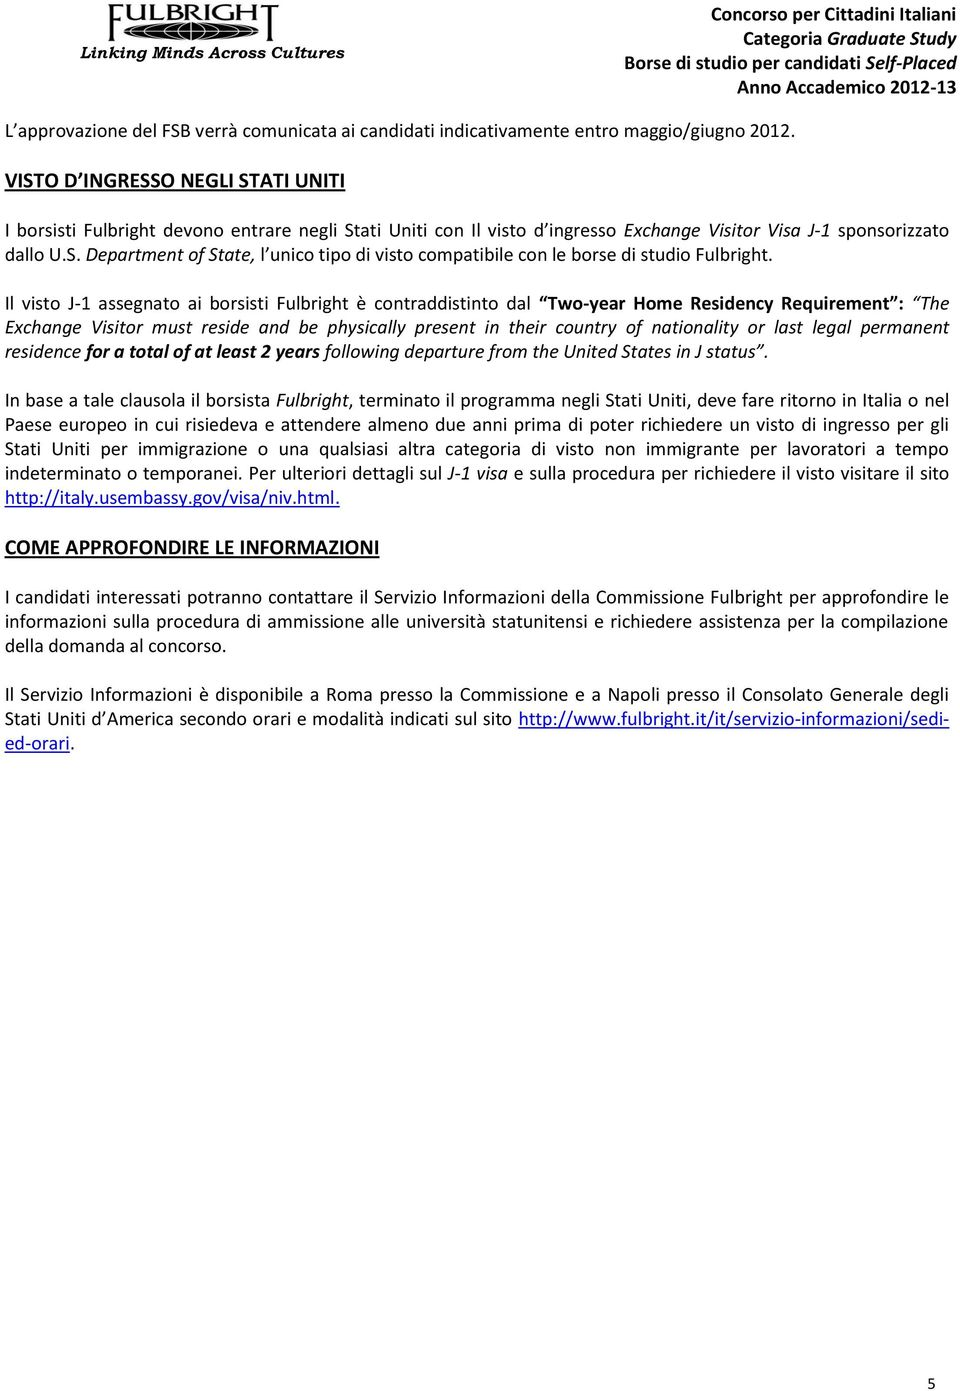 Il visto J-1 assegnato ai borsisti Fulbright è contraddistinto dal Two-year Home Residency Requirement : The Exchange Visitor must reside and be physically present in their country of nationality or